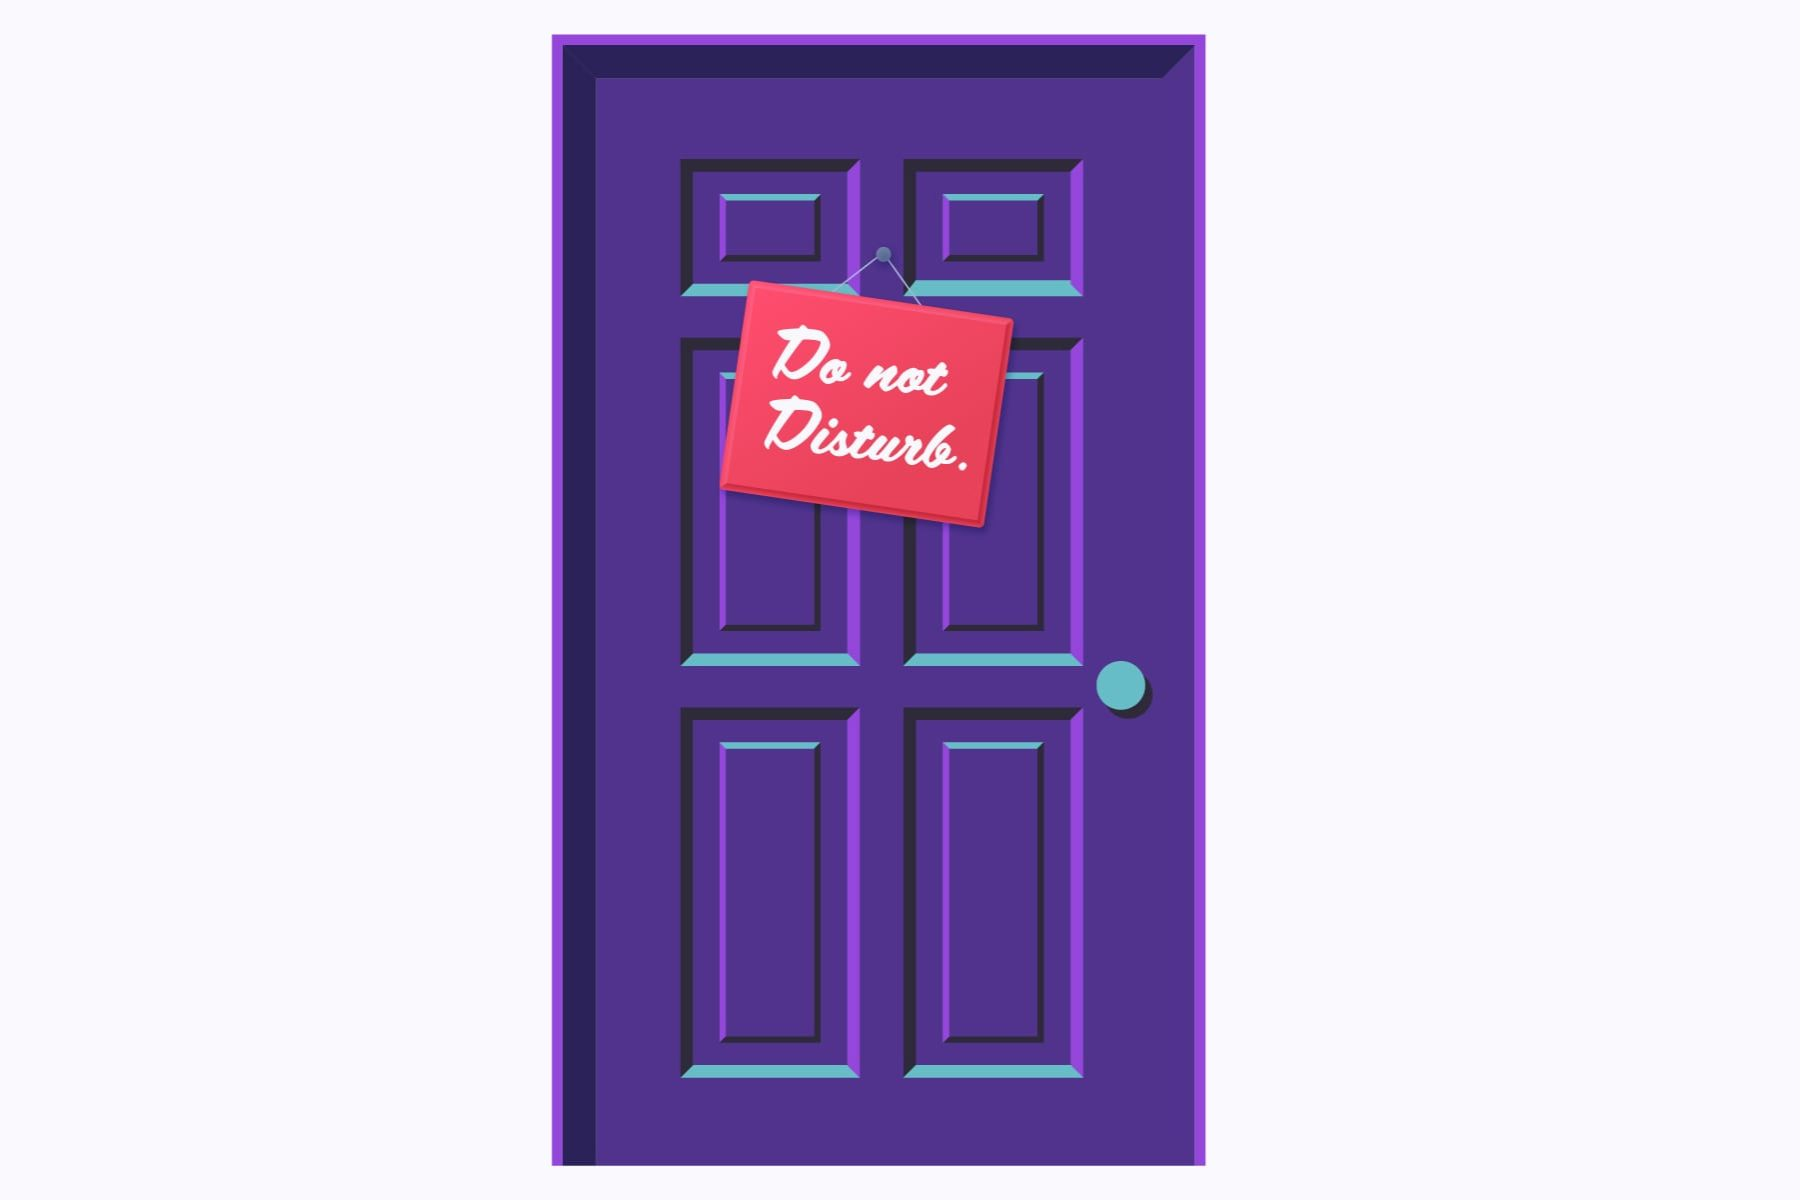 Illustration of a door with a do not disturb sign.